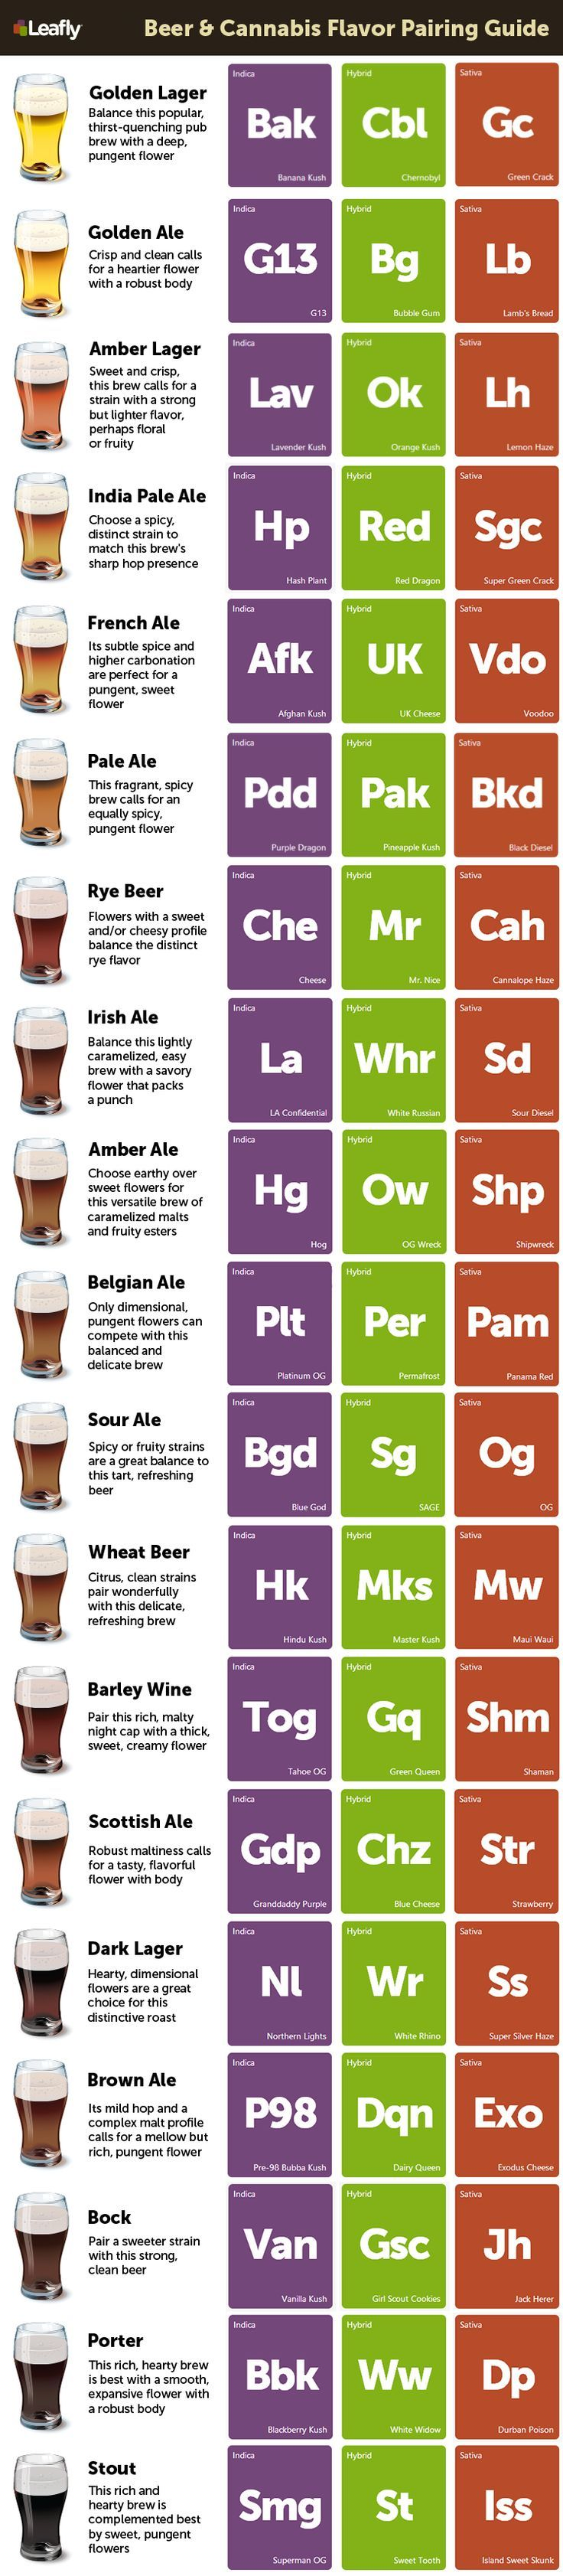 Beer & Cannabis Flavor Pairing Guide - Leafly http://hanfsamenkaufenlegal.com http://thehempoilbenefits.com